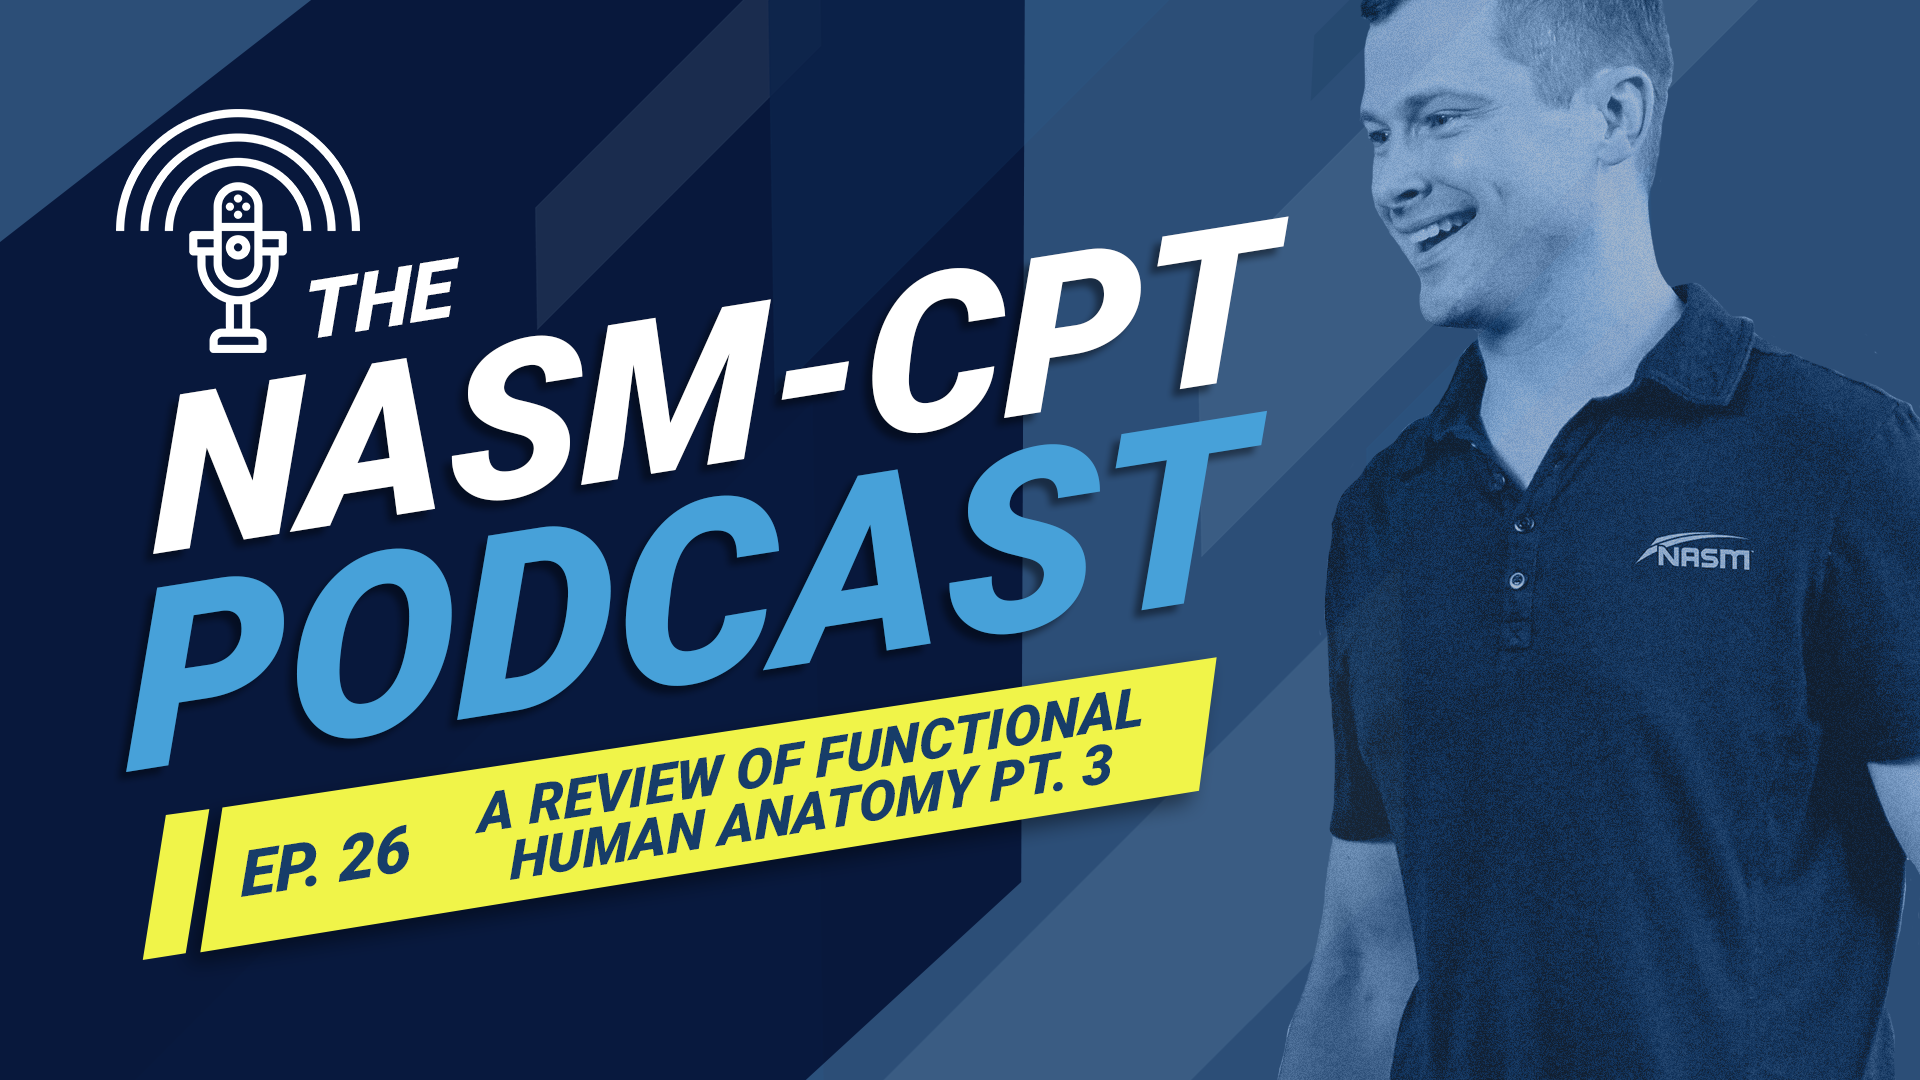 NASM-CPT Podcast Ep. 26